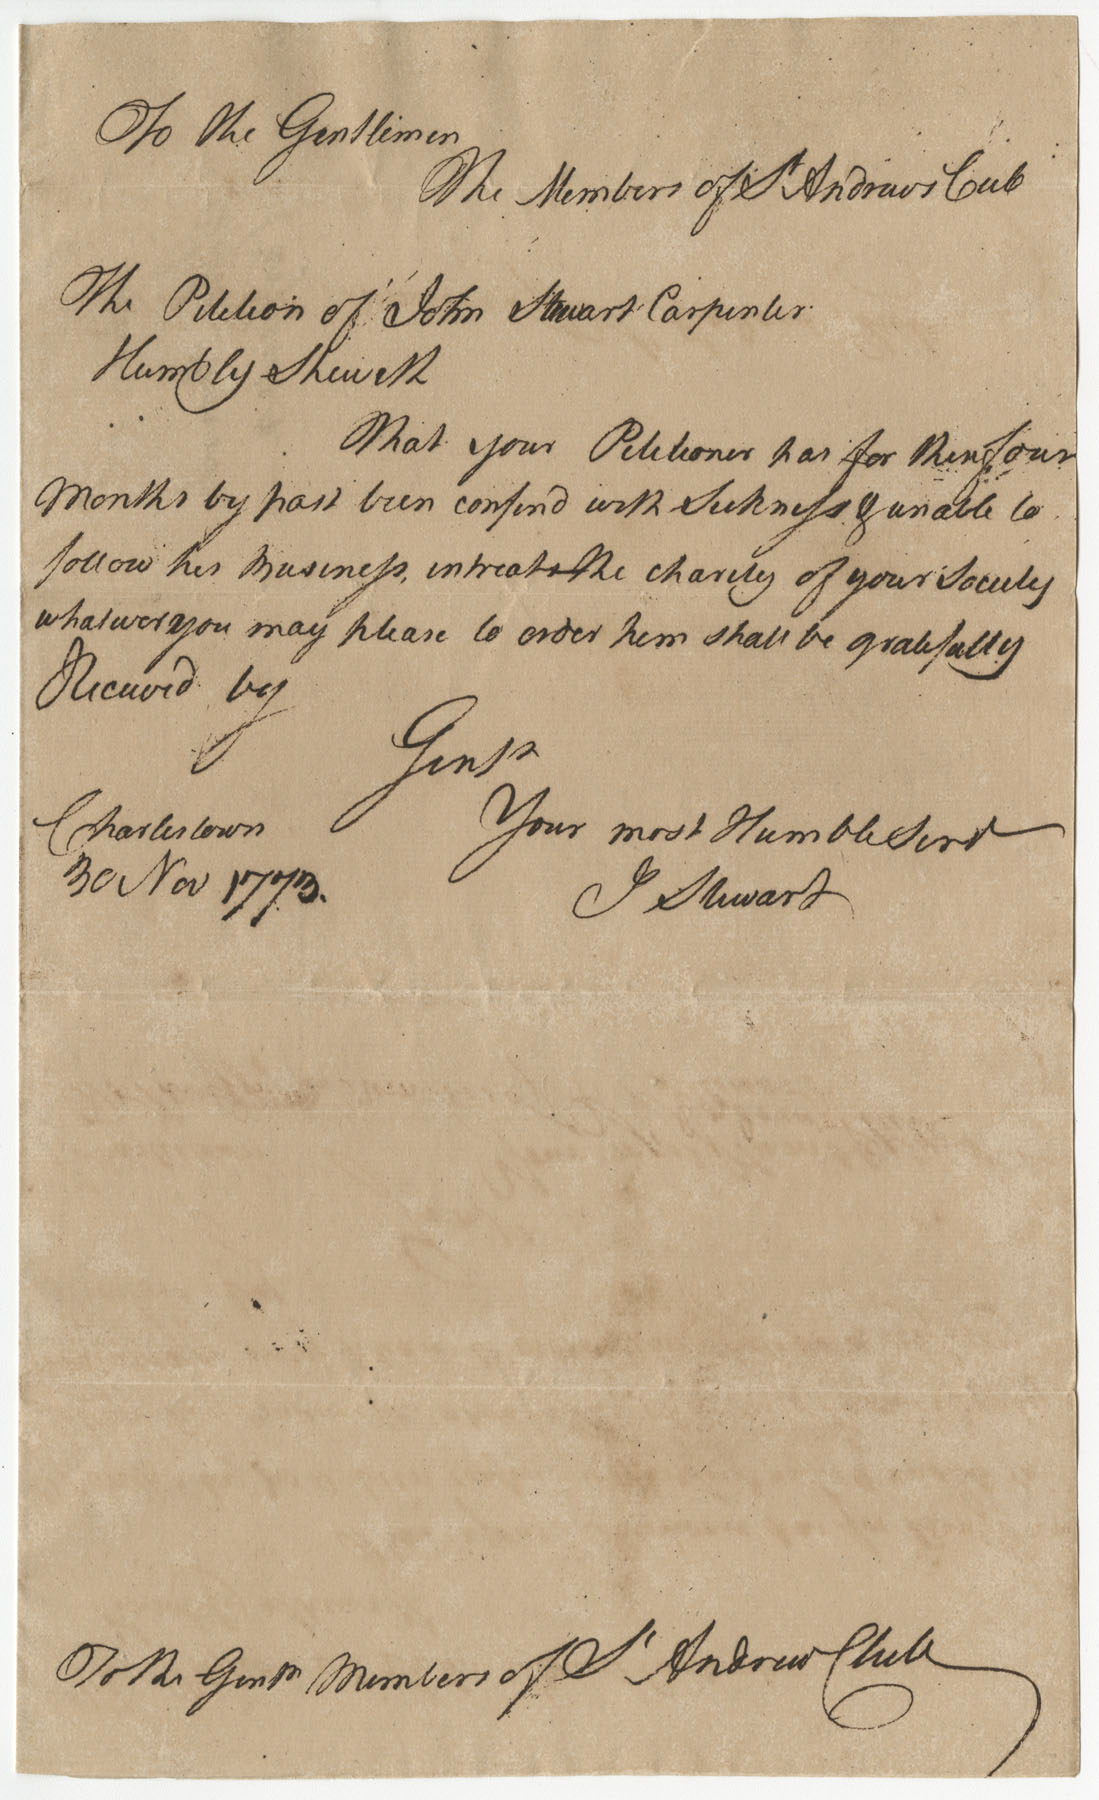 Petition from John Stewart to the St. Andrew's Society